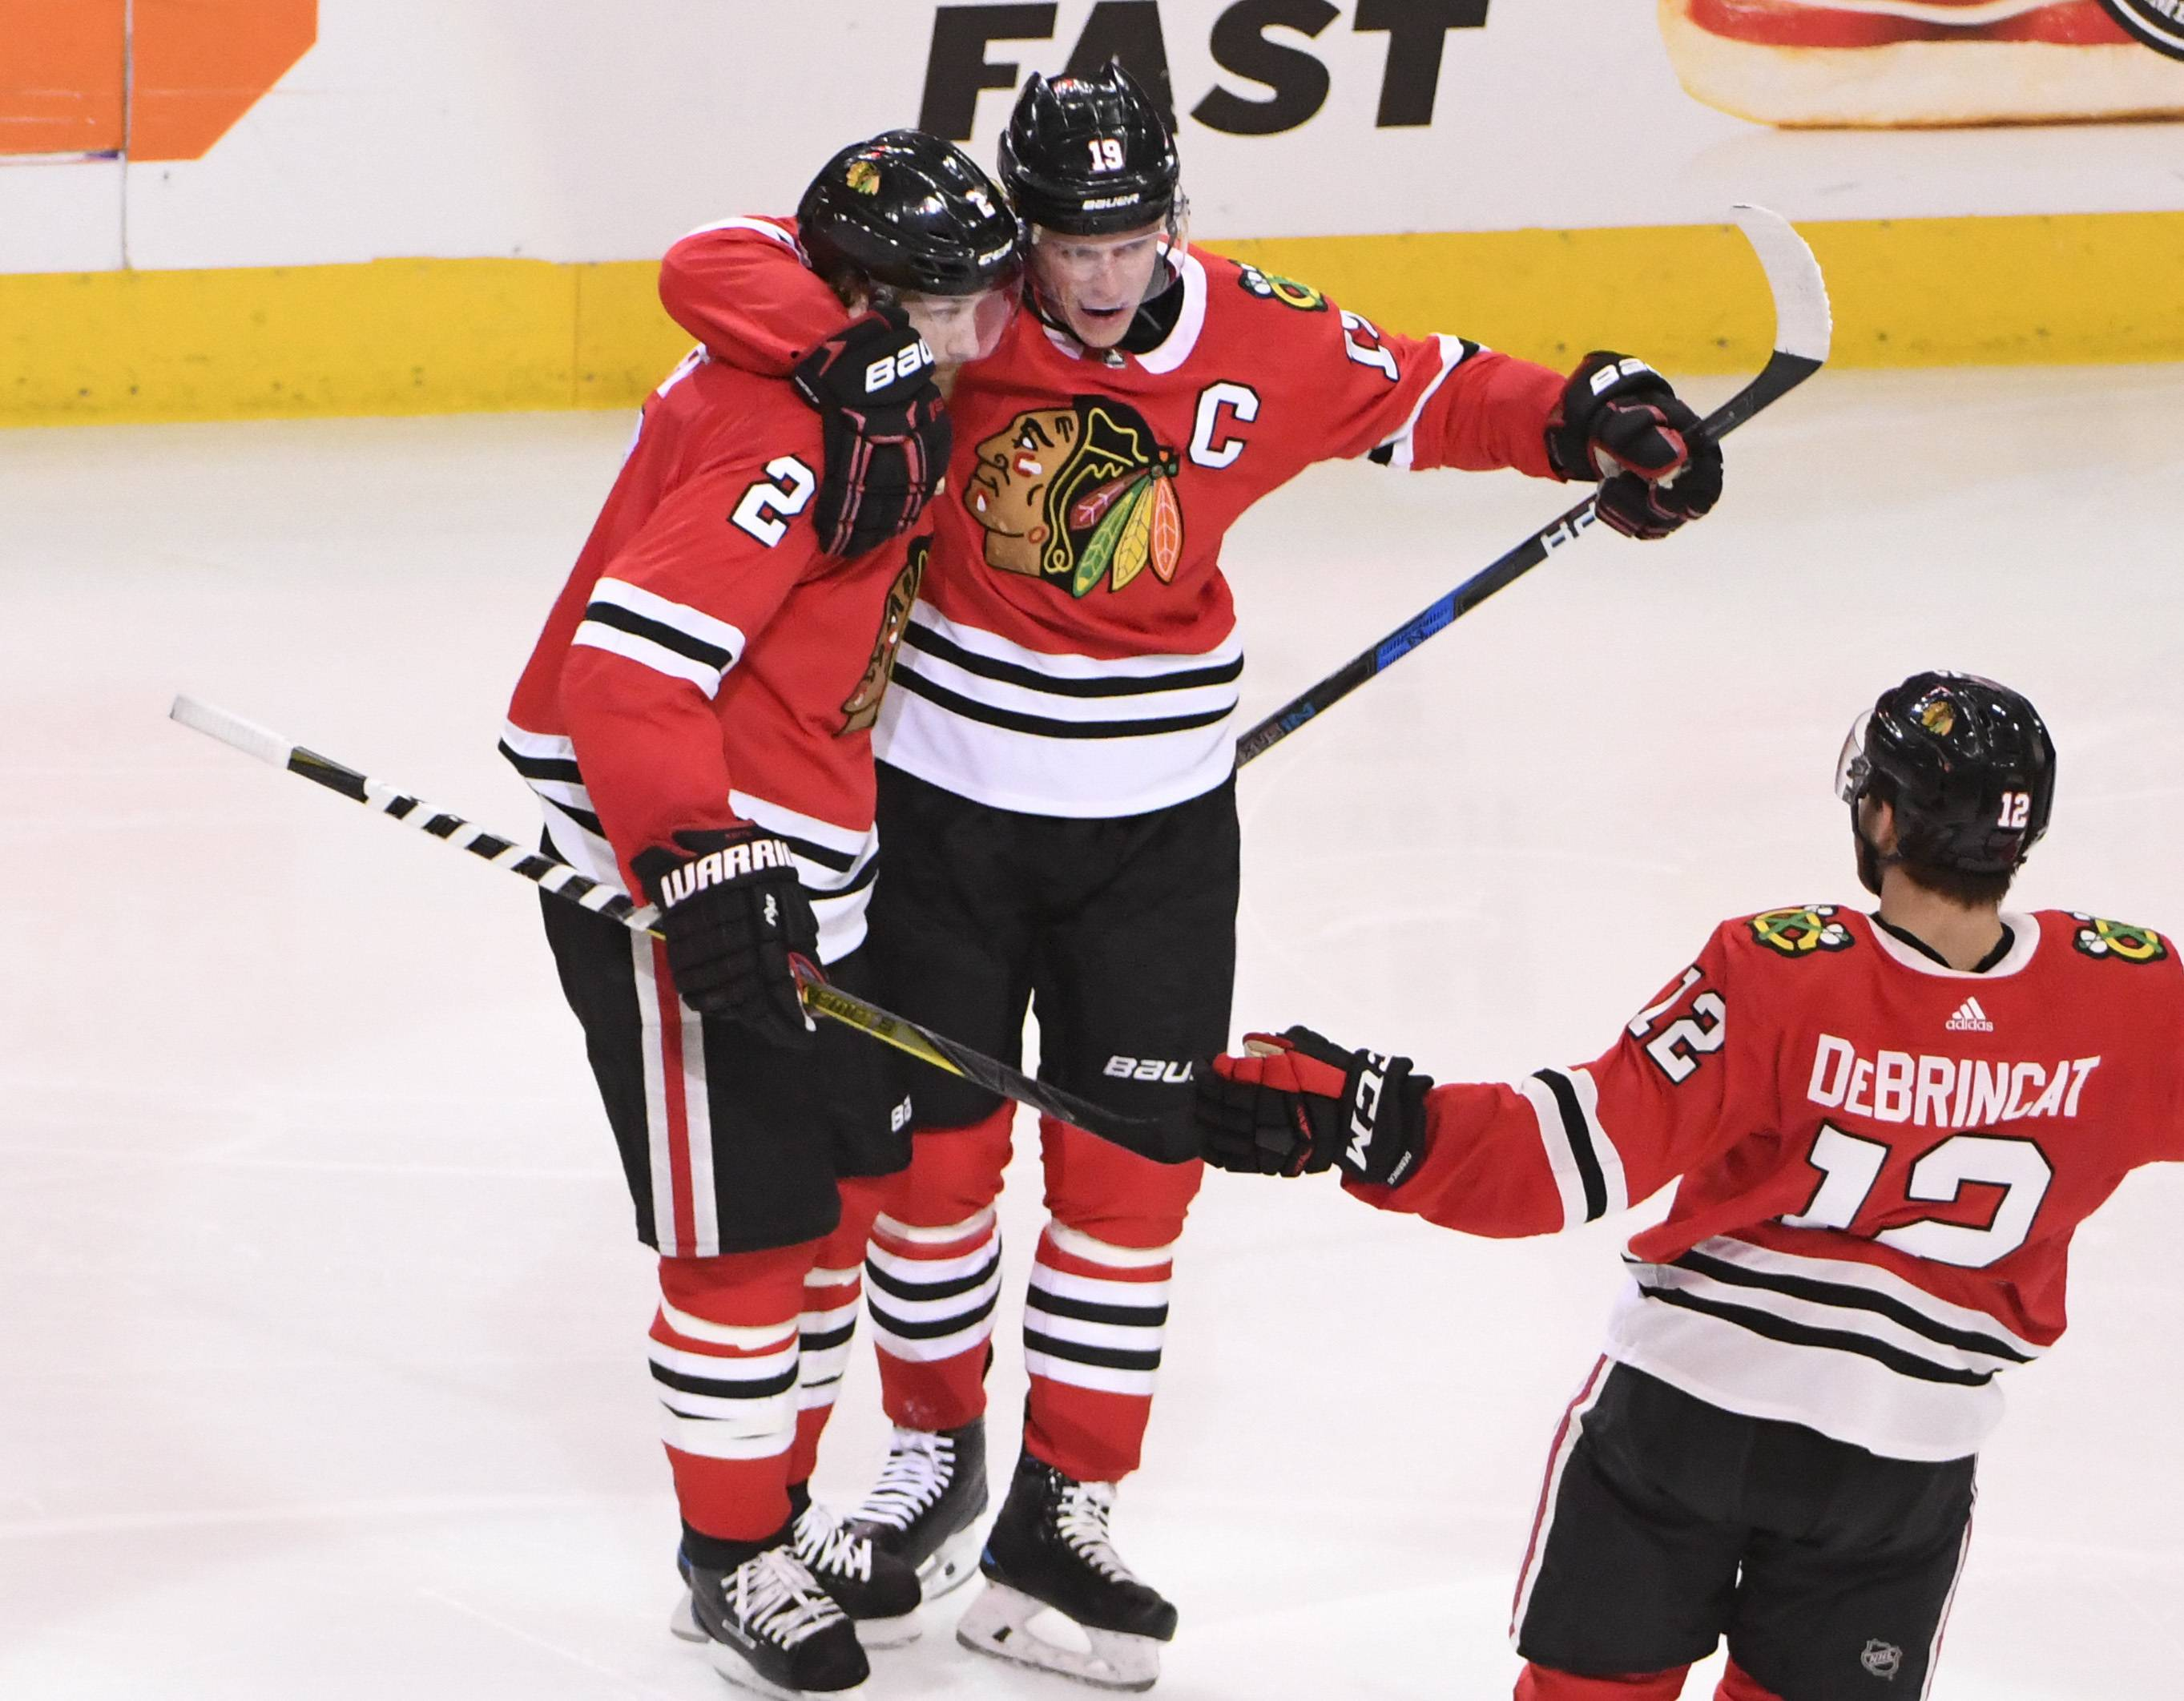 The Chicago Blackhawks have scored the first goal in 10 of the past 13 games, yet are 2-6-2 in those contests.